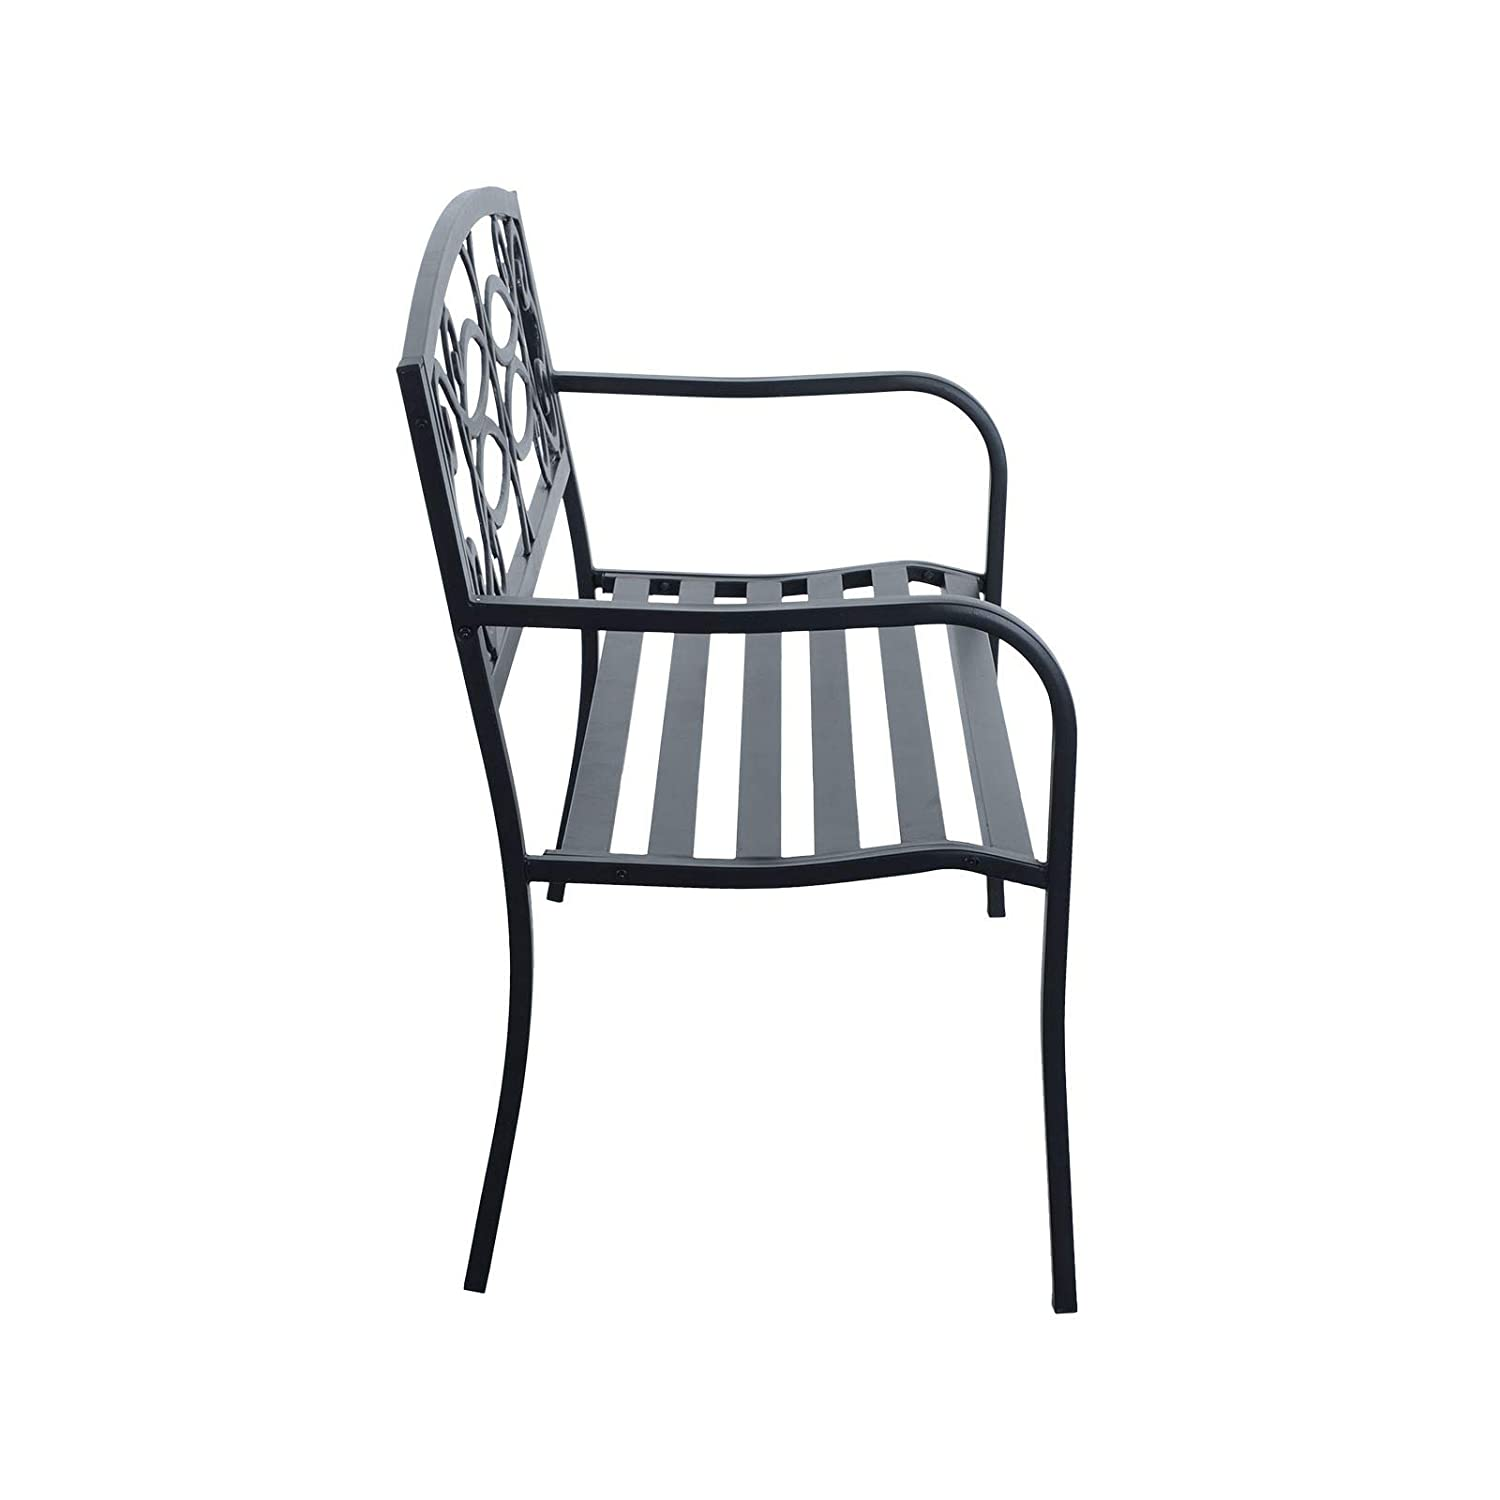 Azuma Regal Bench Garden Furniture 2 Seater Outdoor Chair Seat Black Steel Seating With Elegant Backrest For Patio Conservatory Decking Deck Park Picnic Barbecue BBQ Party Family Friends Summer